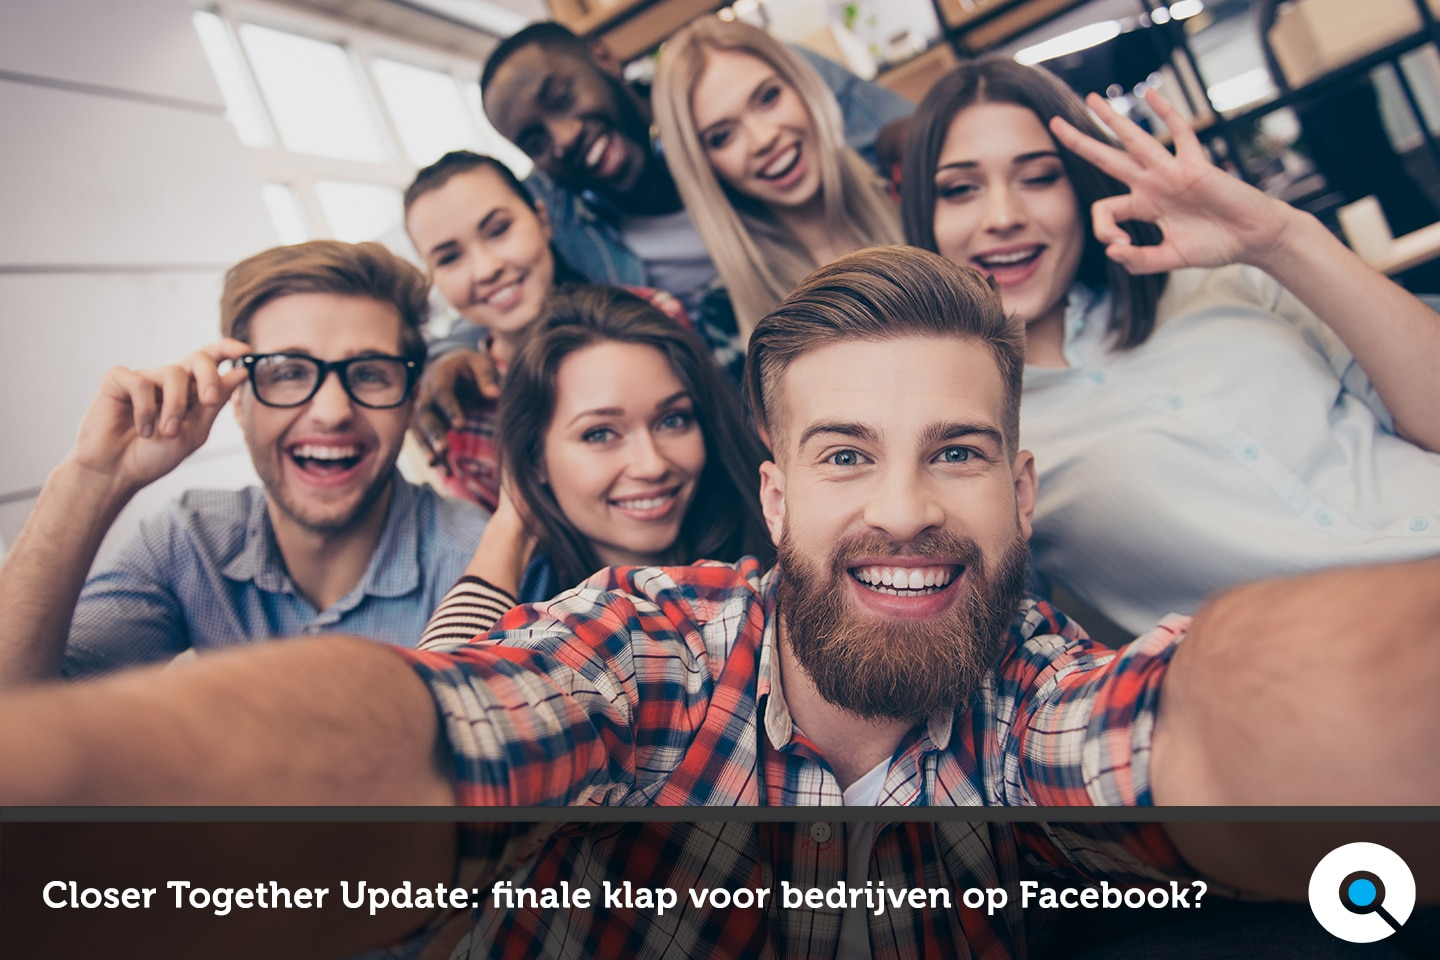 Facebook Closer Together Update - finale klap voor bedrijven op Facebook